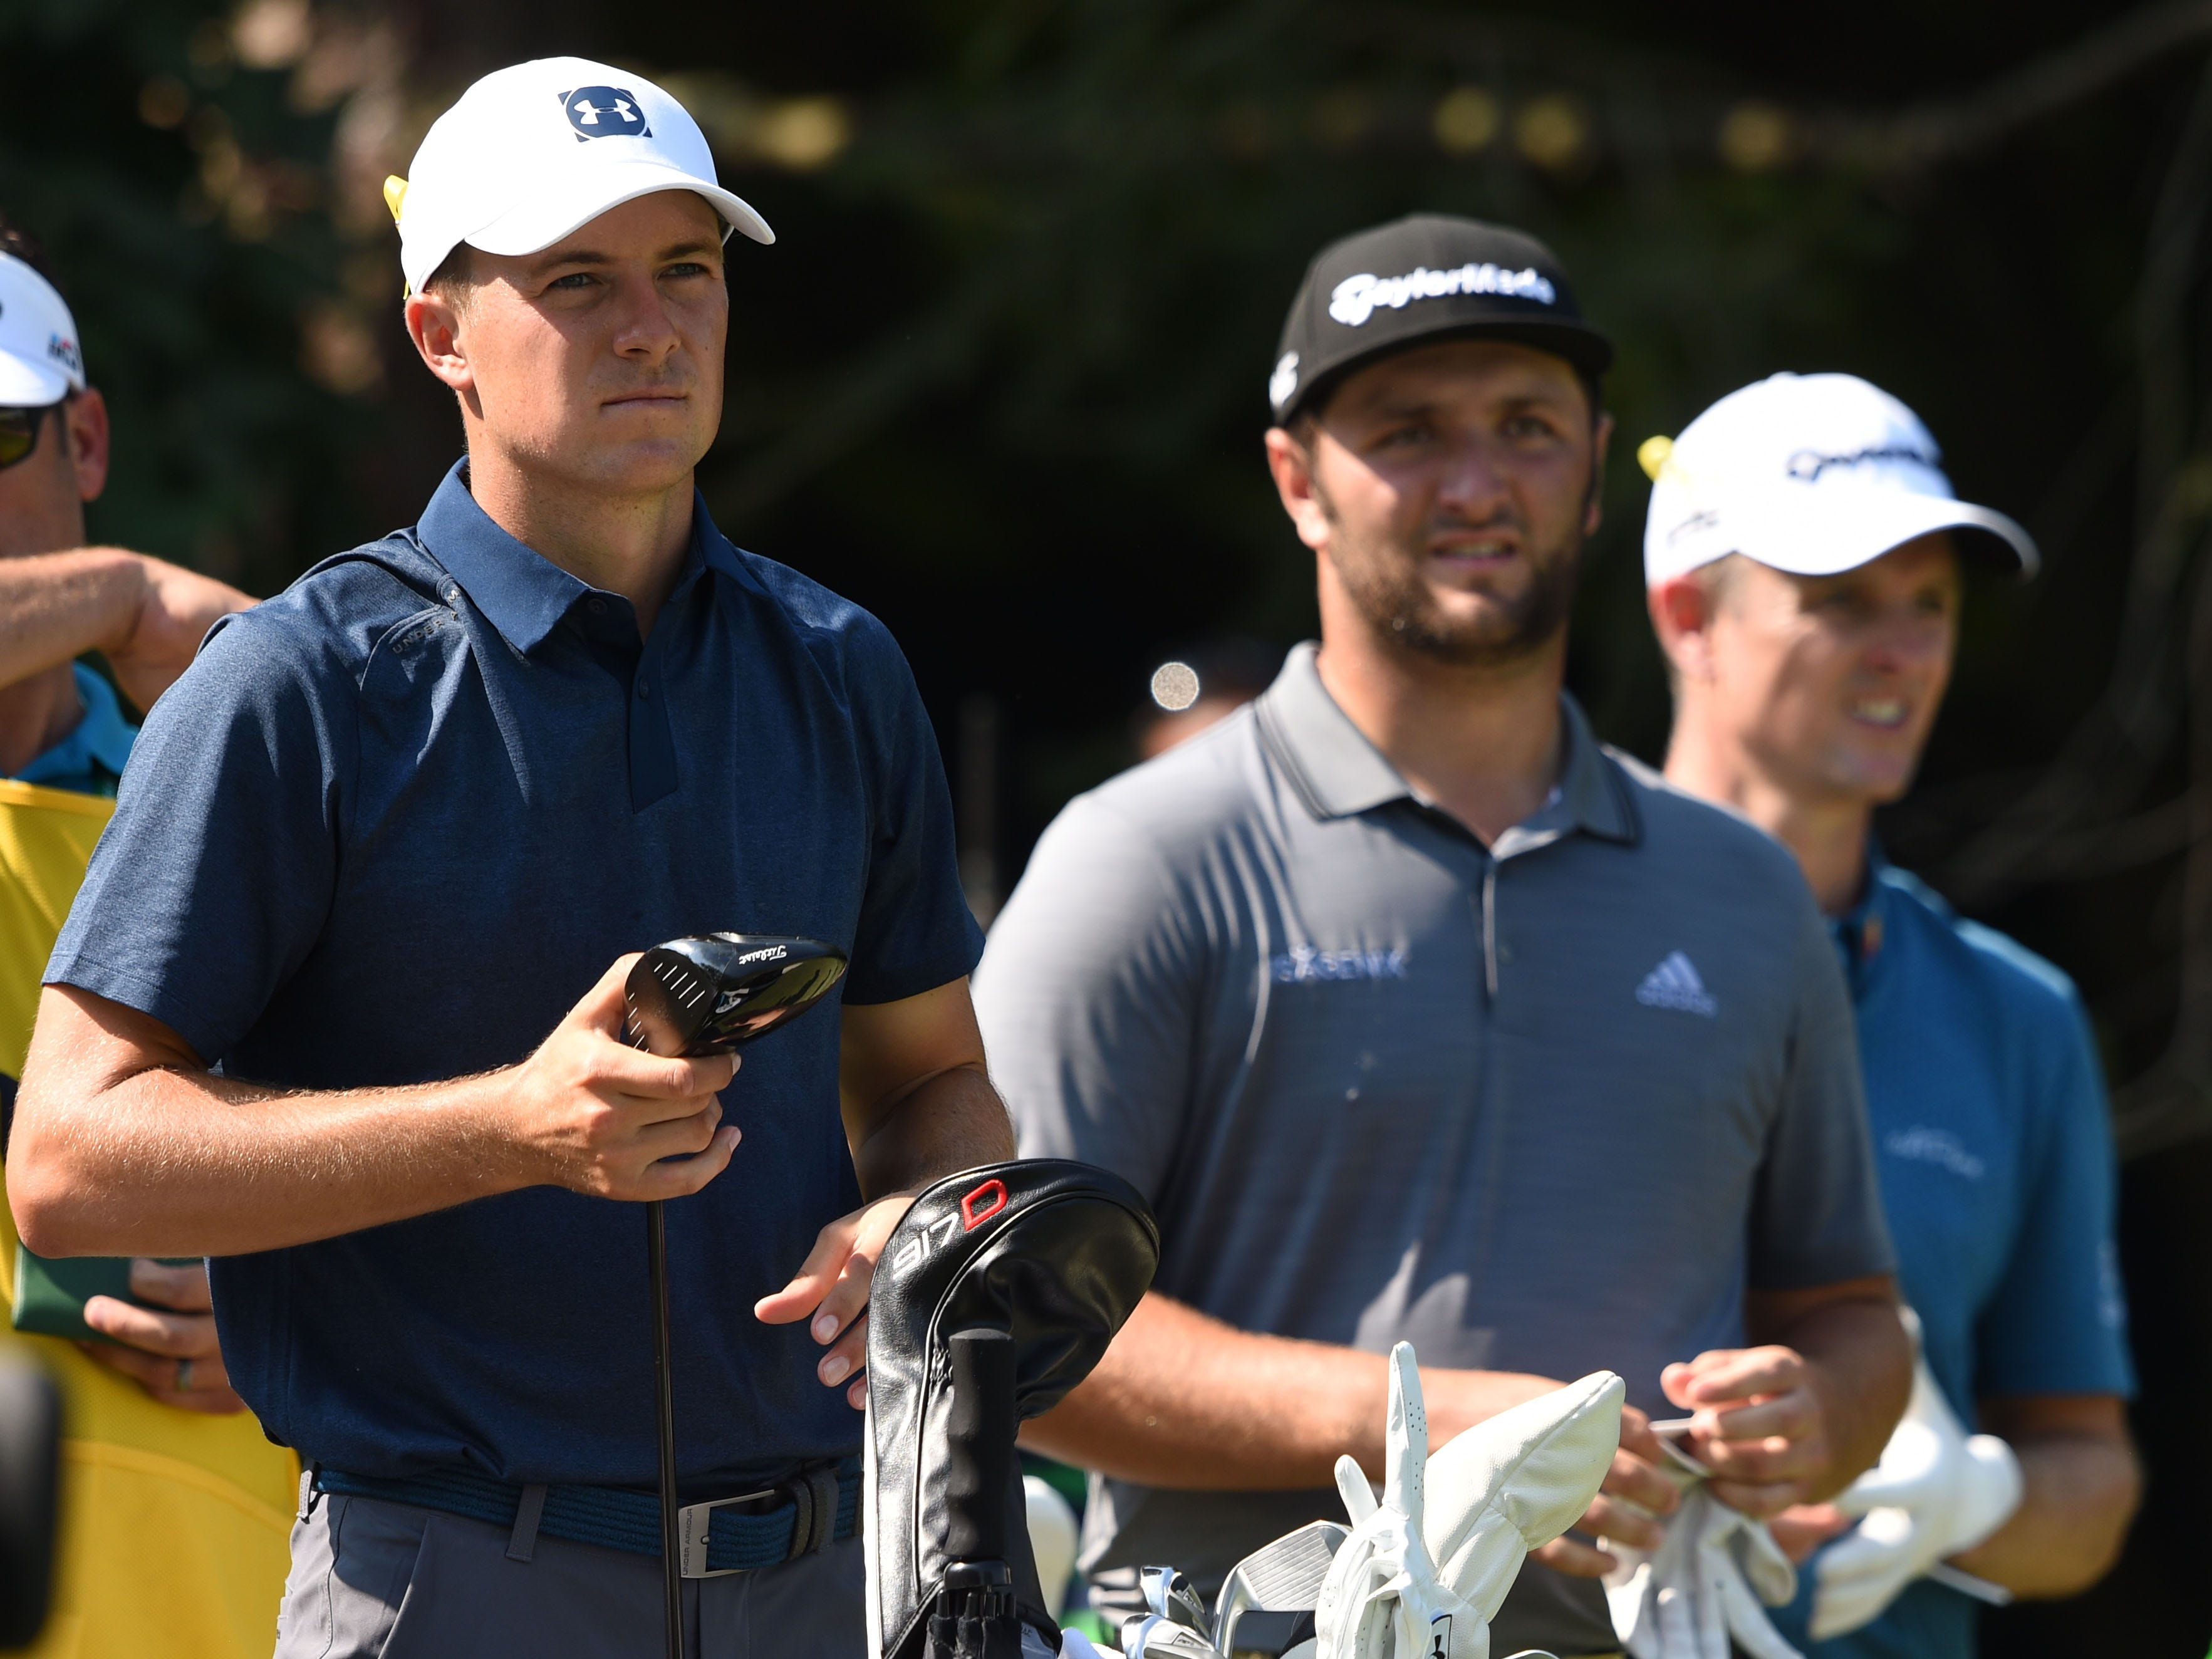 Jordan Spieth  and Jon Rahm on the 18th tee during the second round.